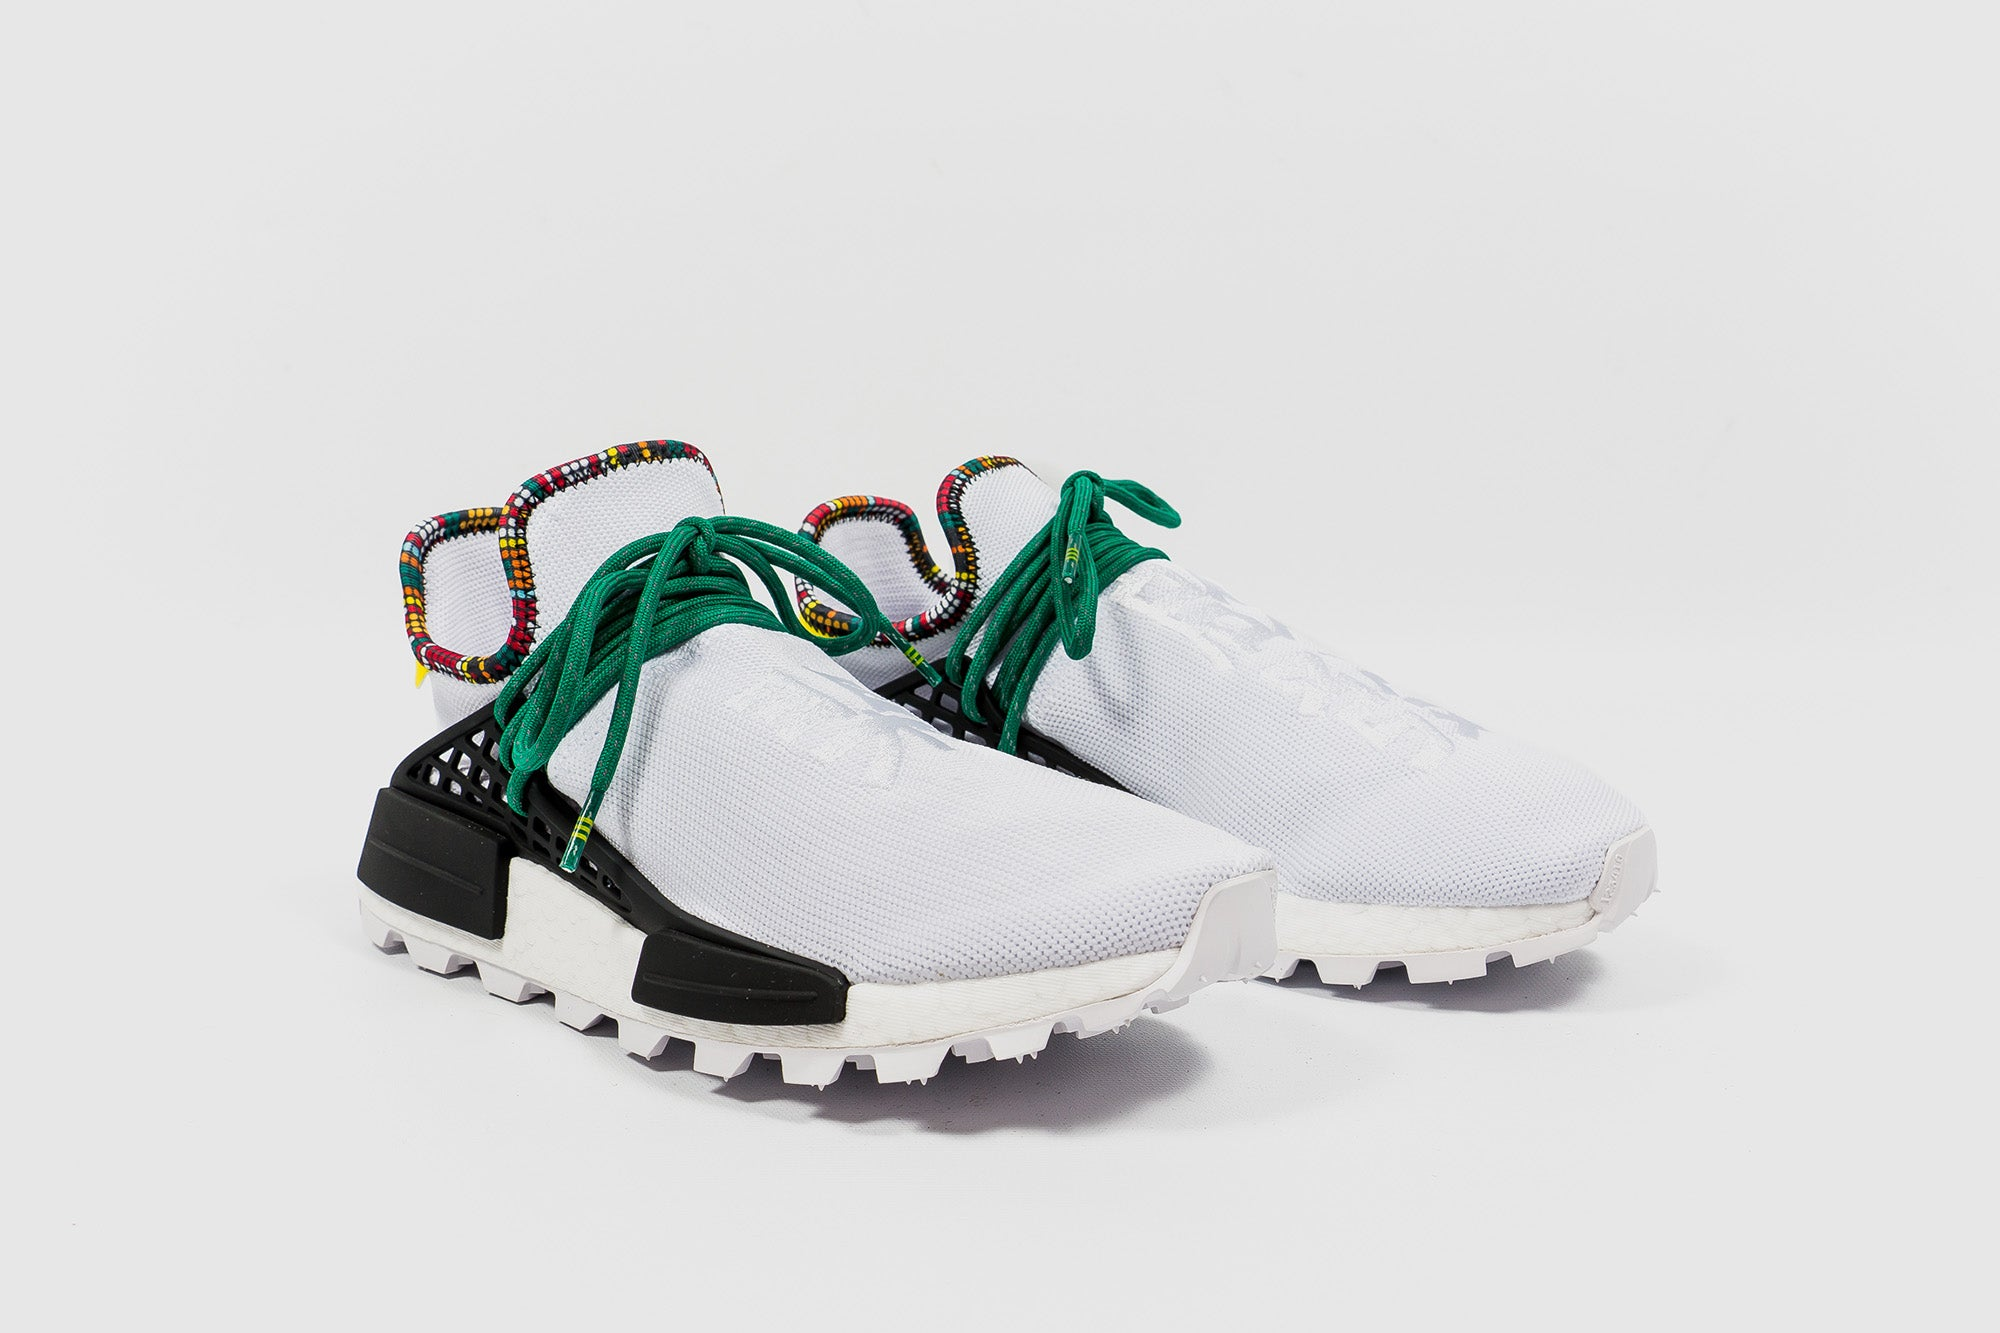 8d5e5695d ADIDAS ORIGINALS X PHARRELL WILLAMS SOLAR HU NMD